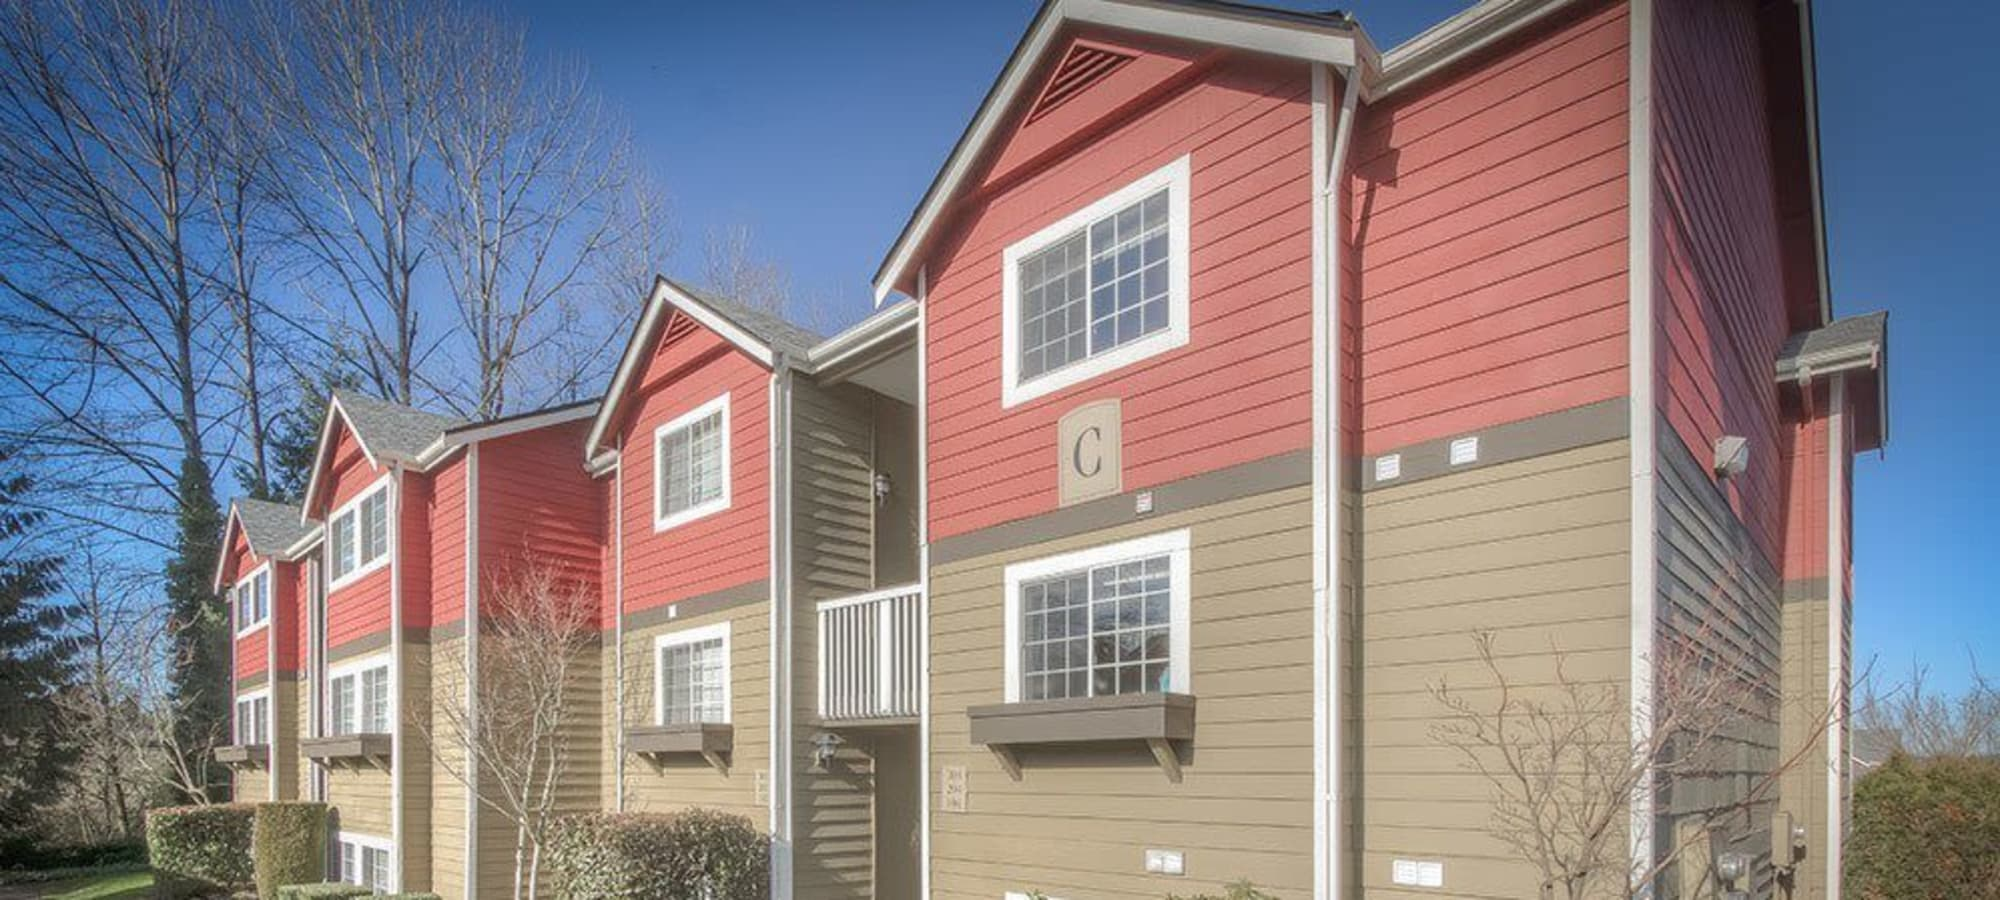 Chestnut Hills Apartments in Puyallup, Washington